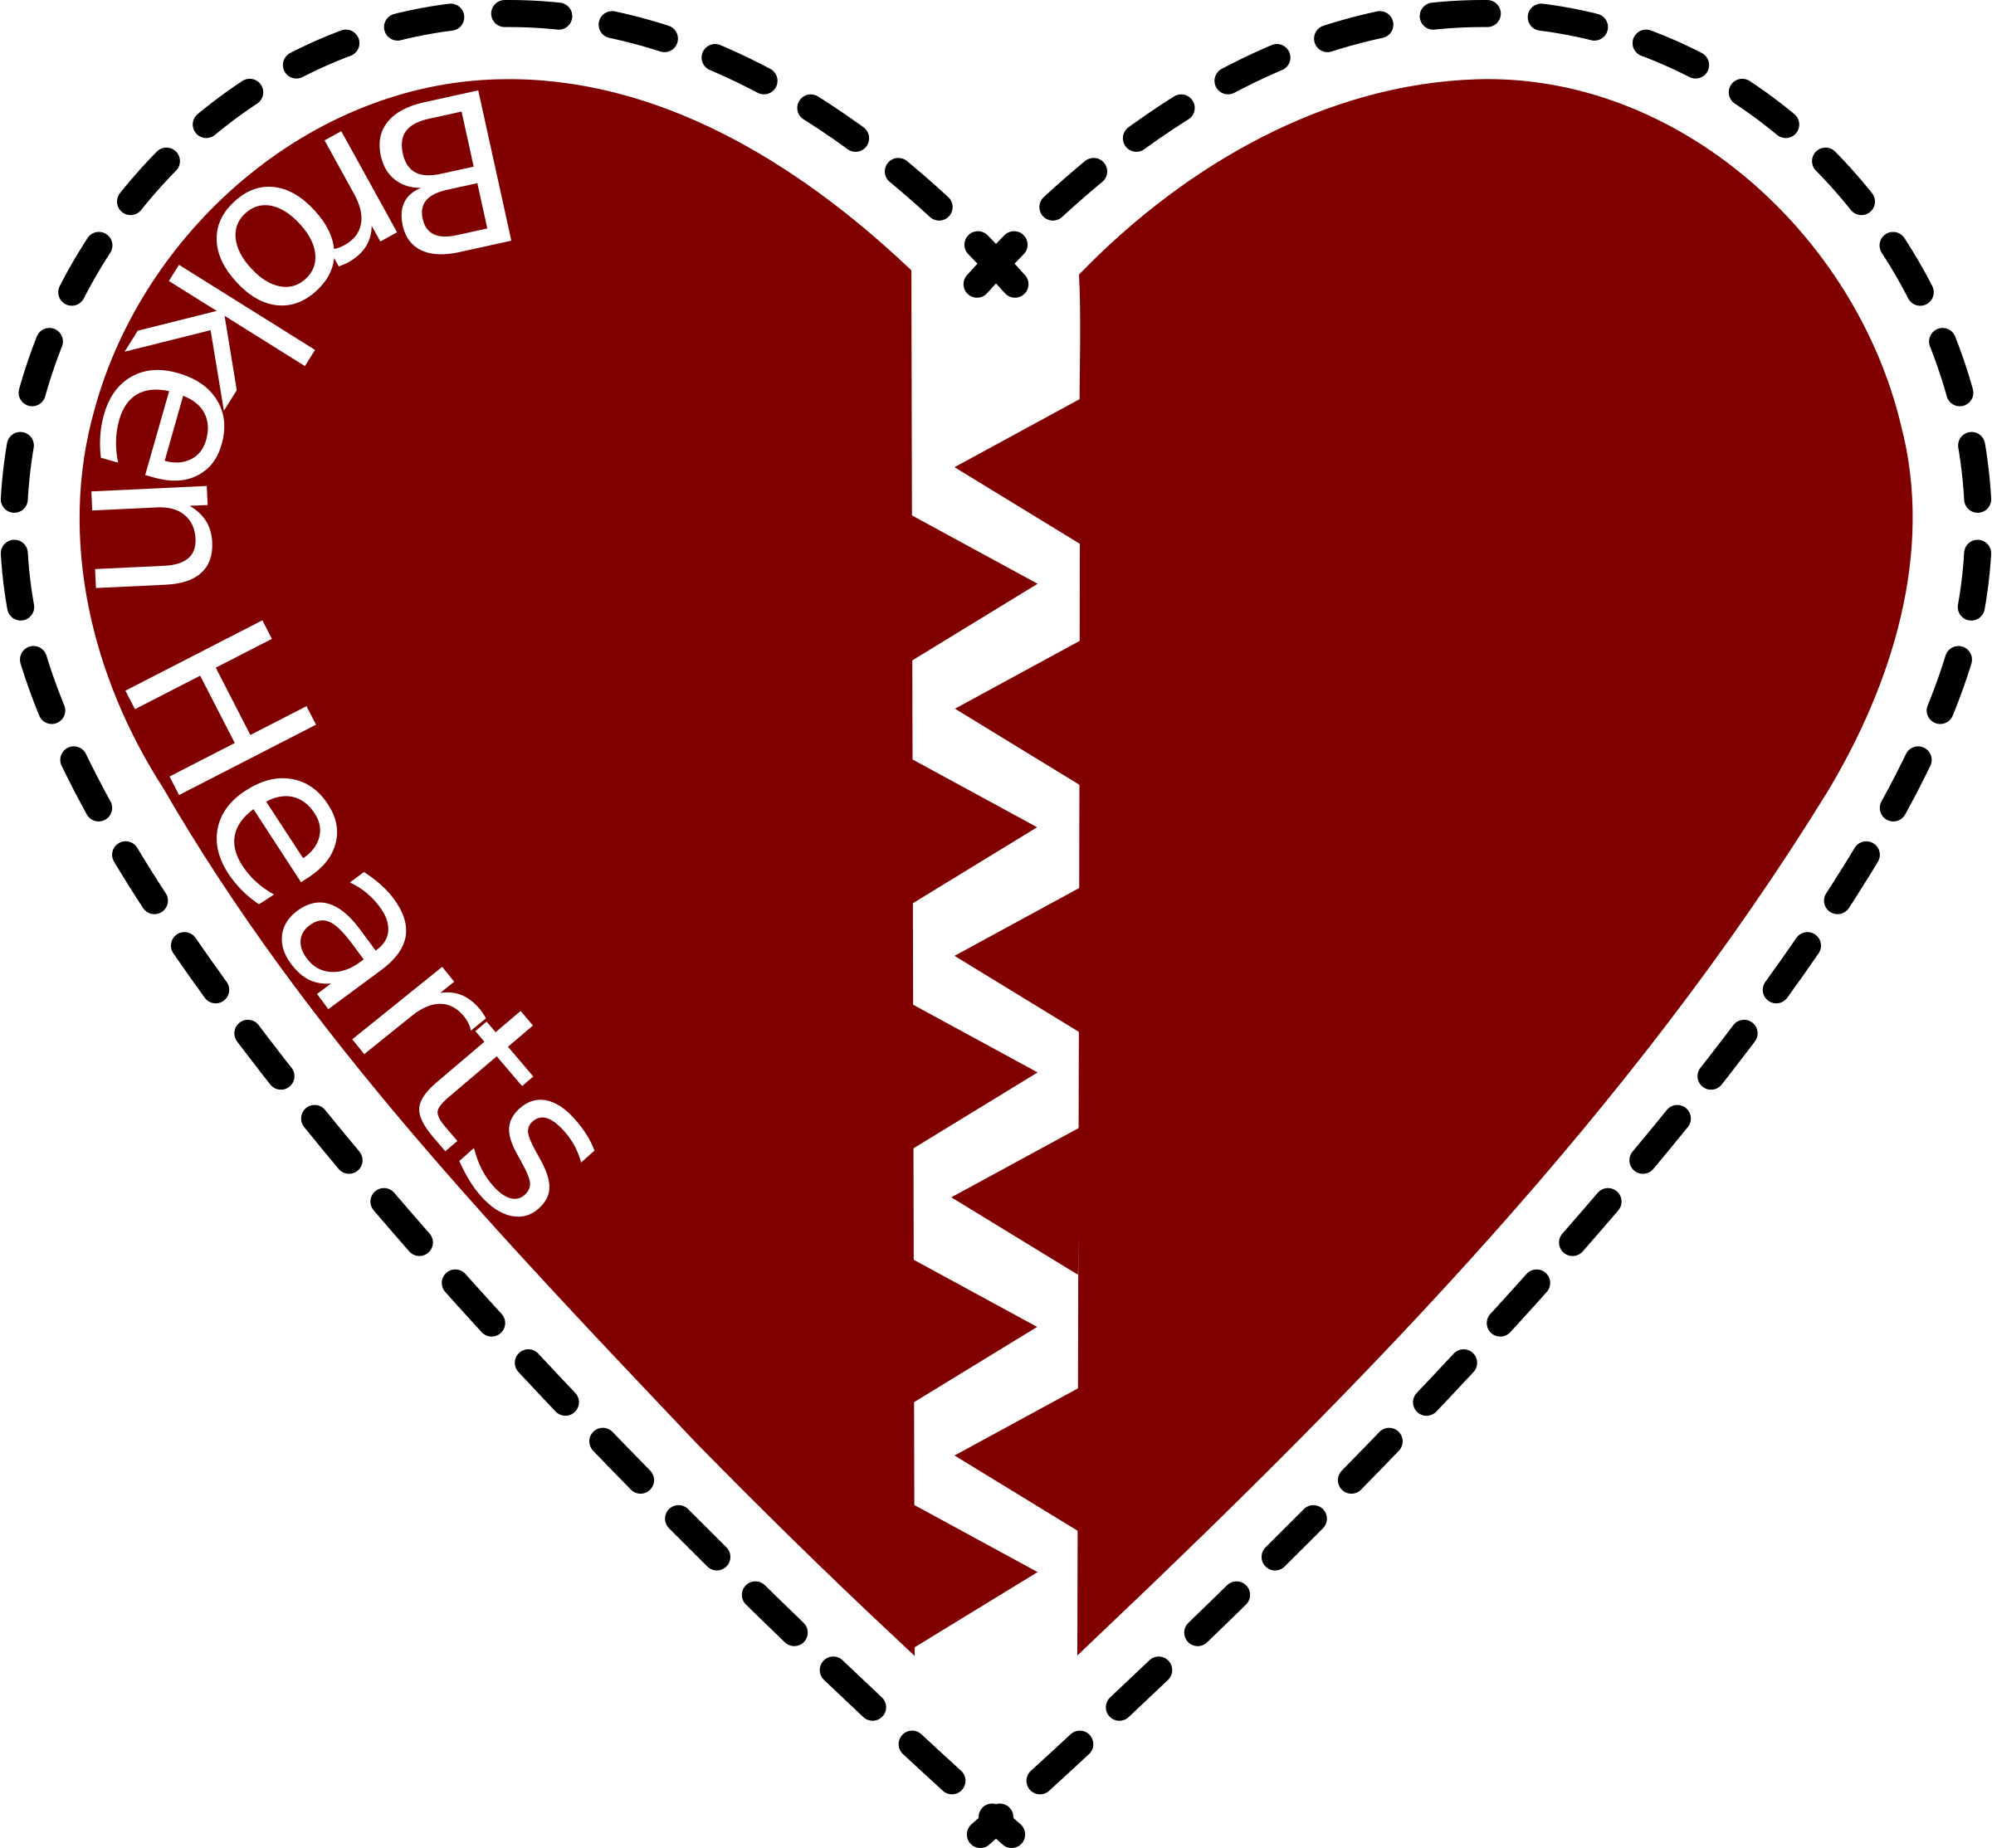 Broken Hearts by elands.net